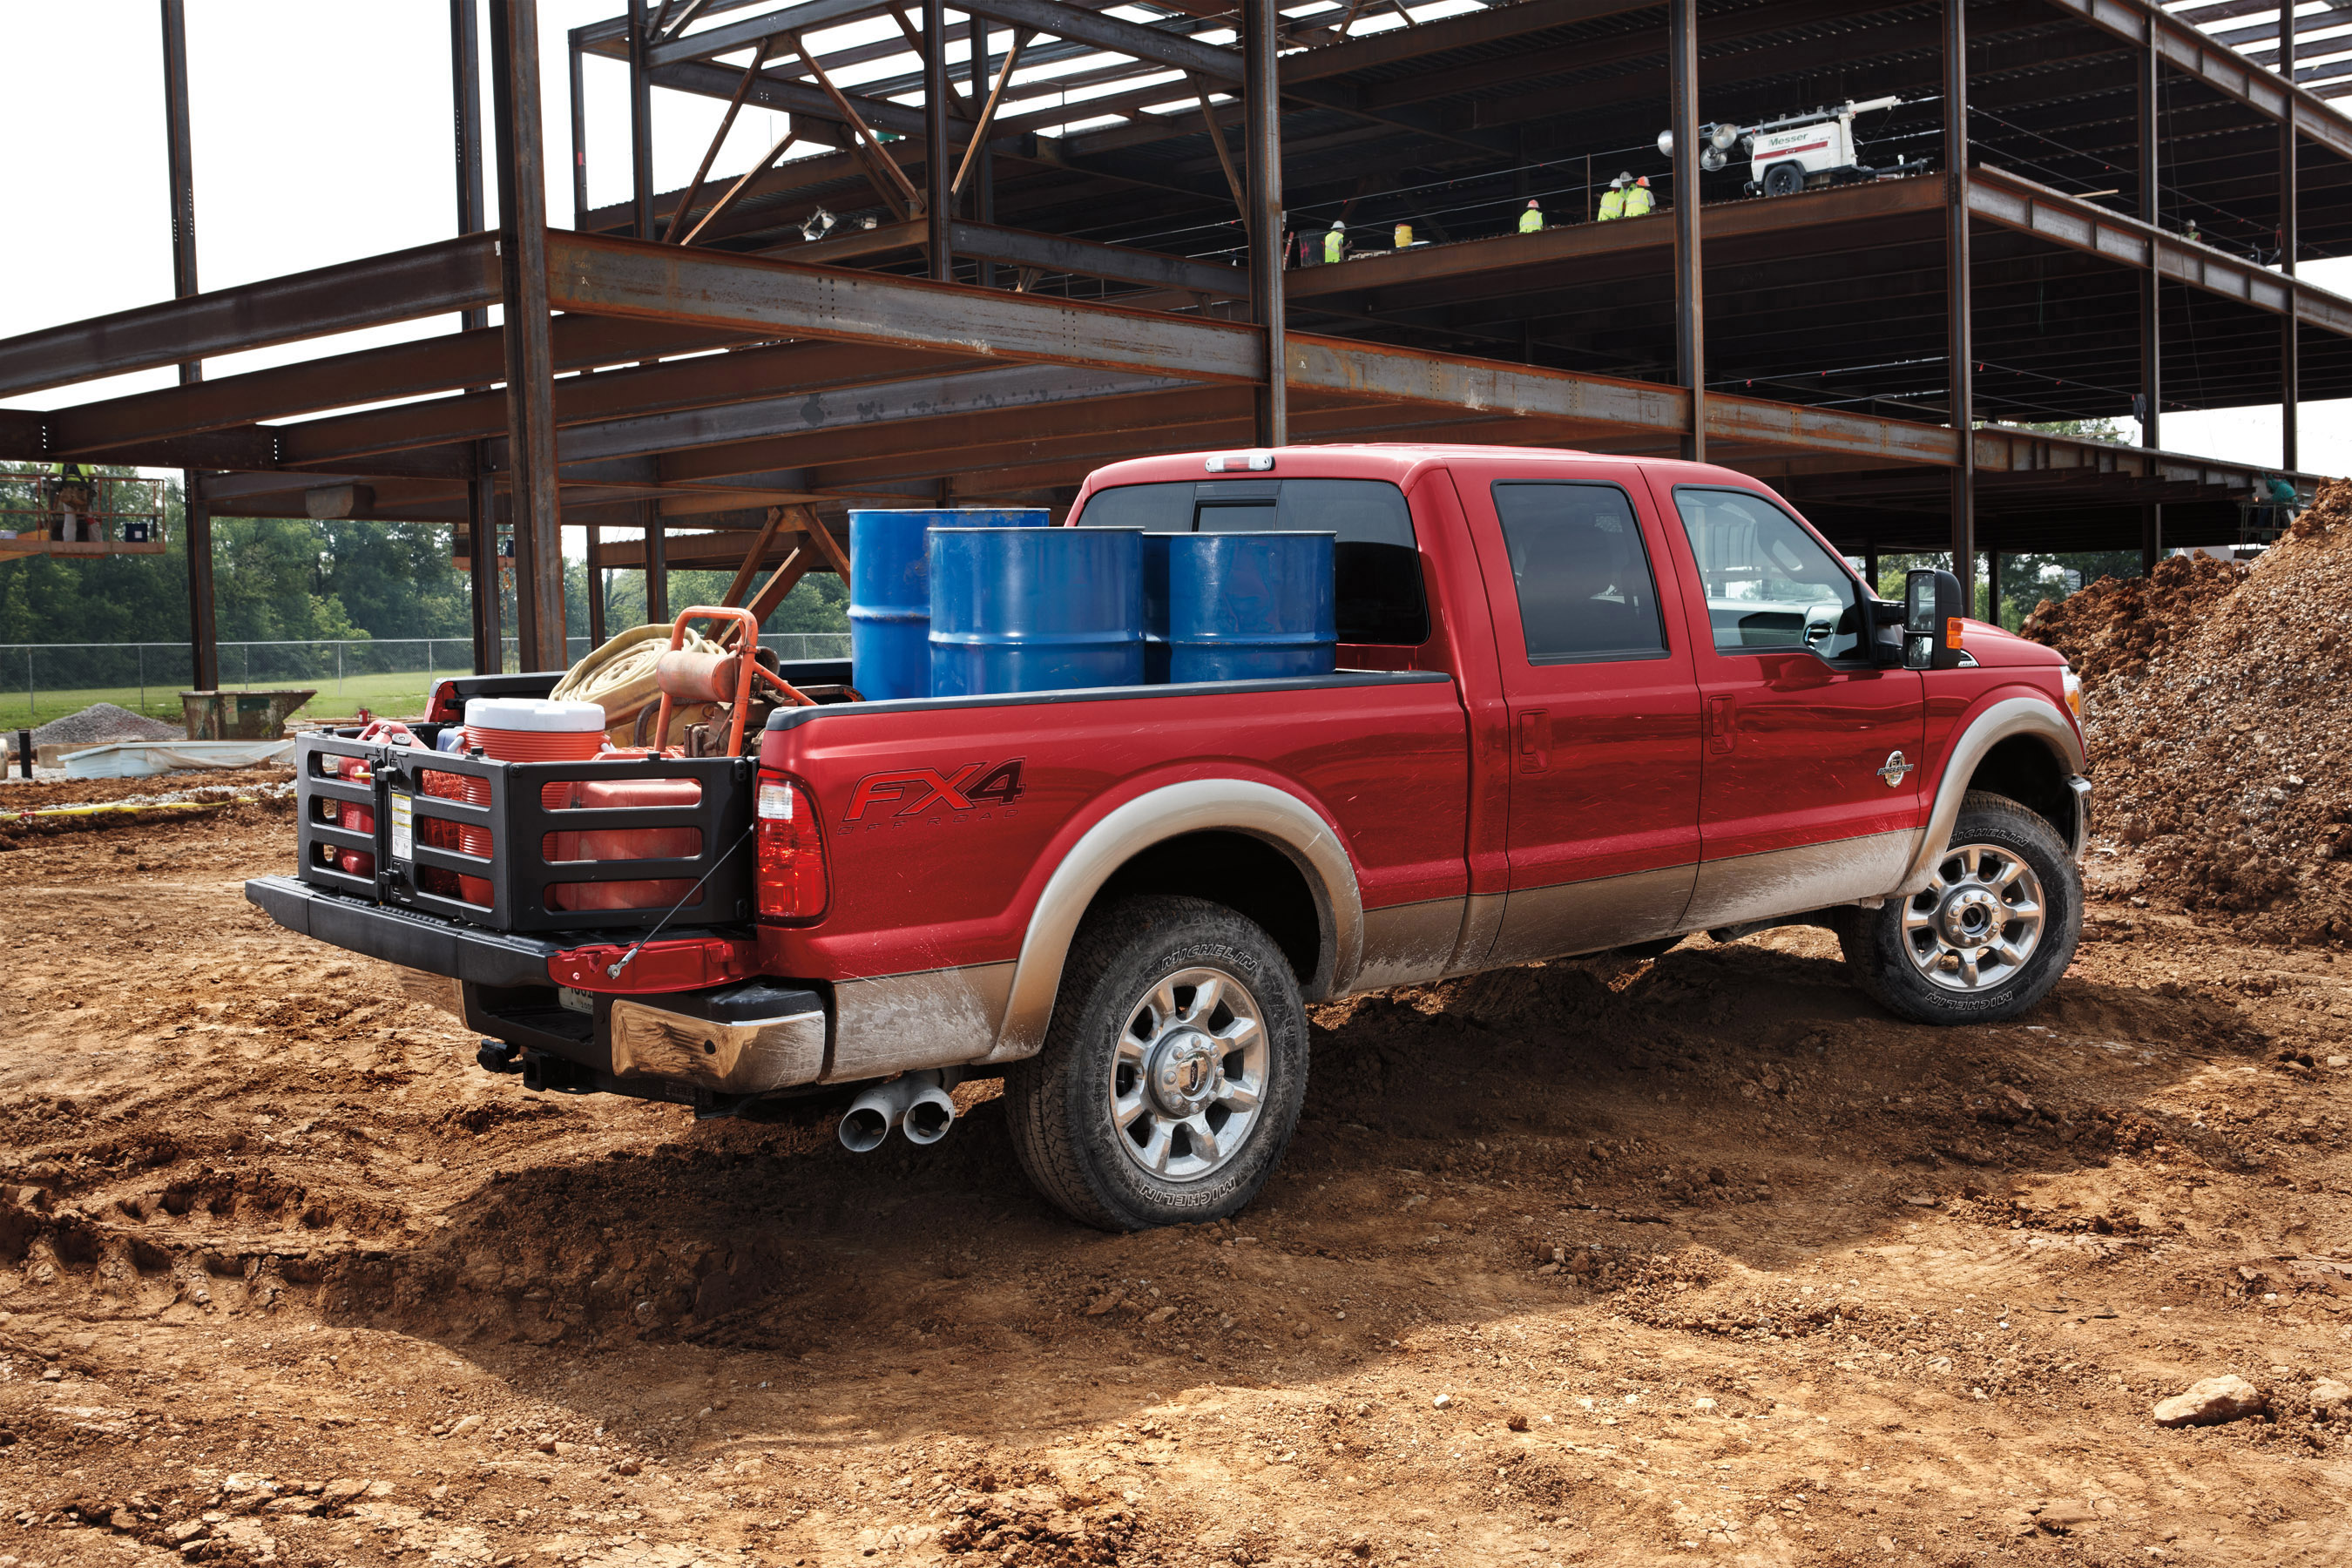 2014 ford f series super duty - 2014 Ford F Series Super Duty